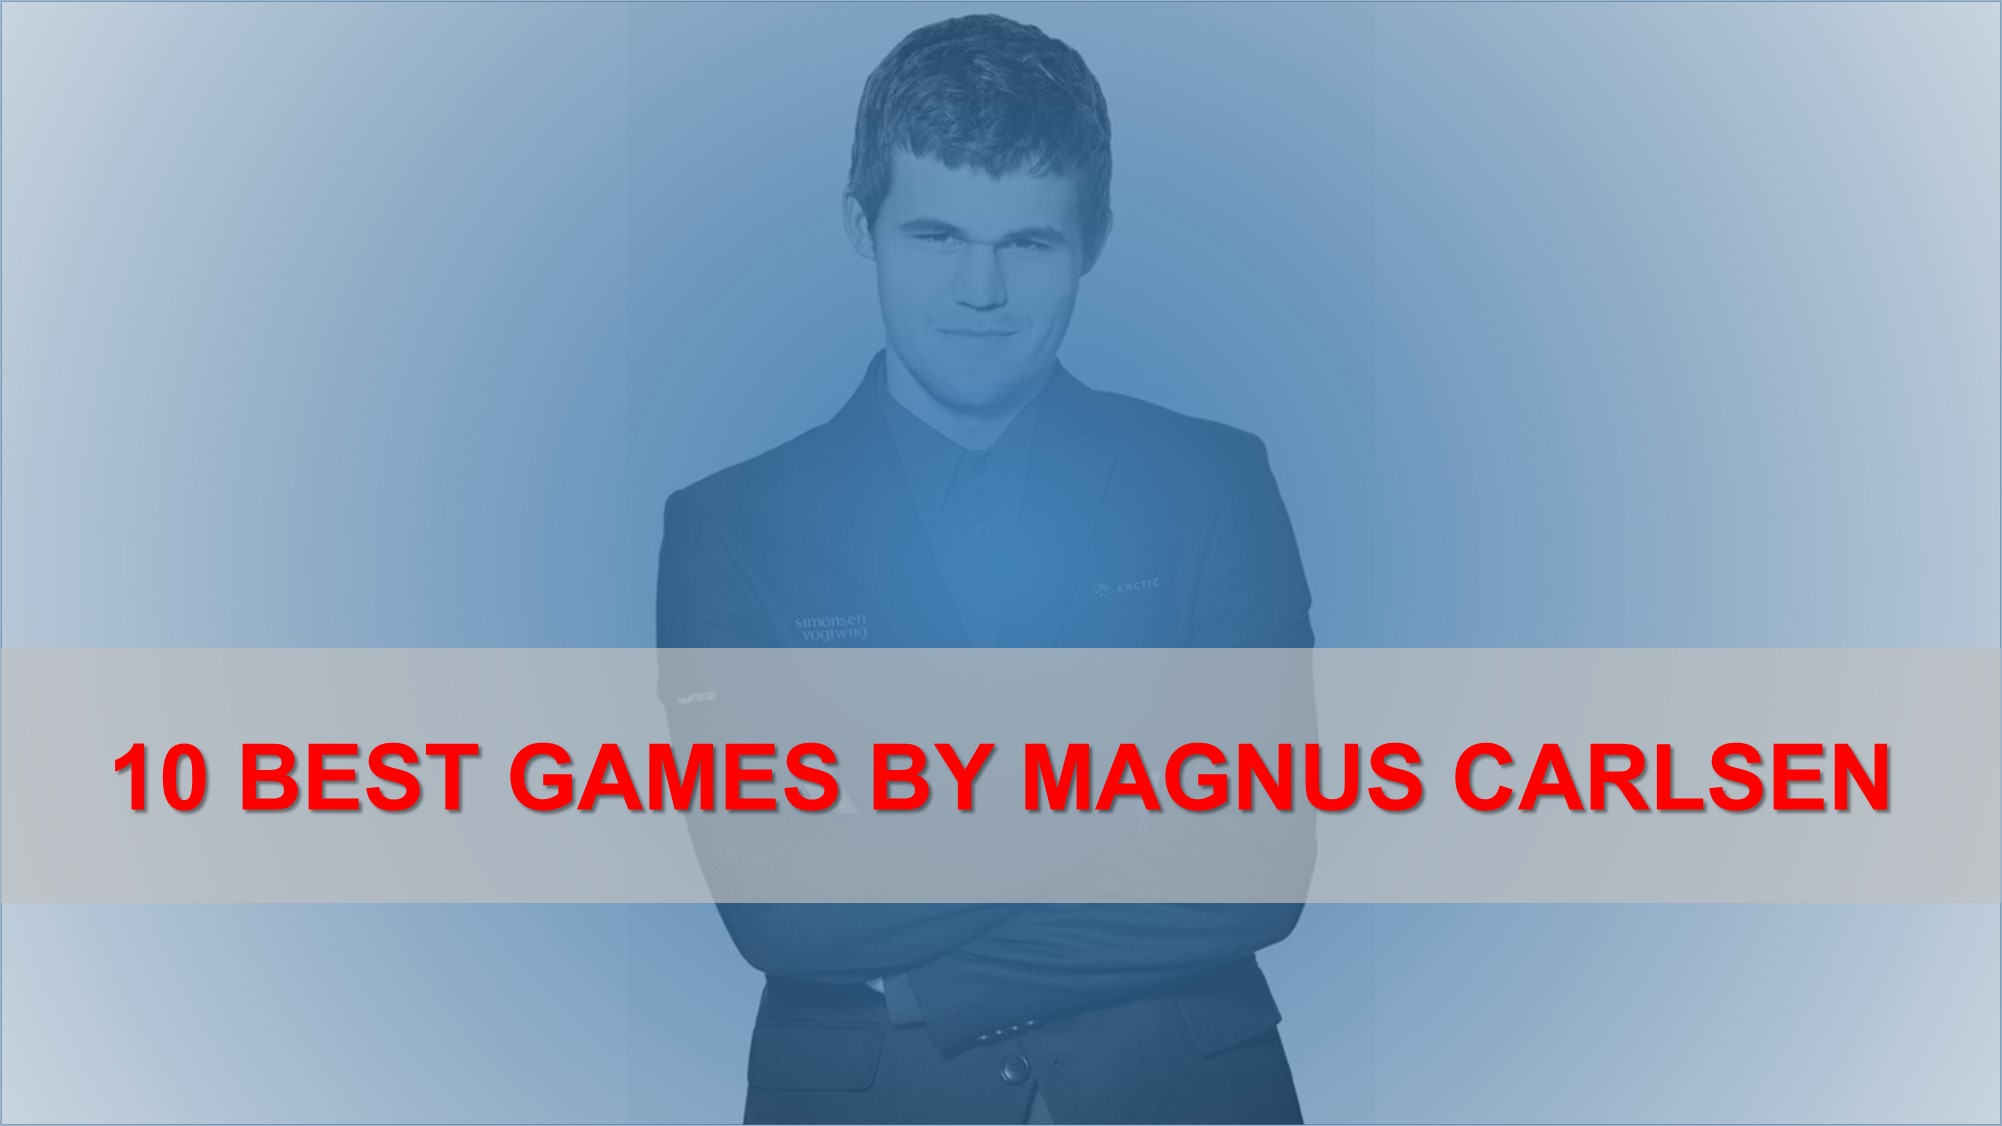 10 Best Games by Magnus Carlsen